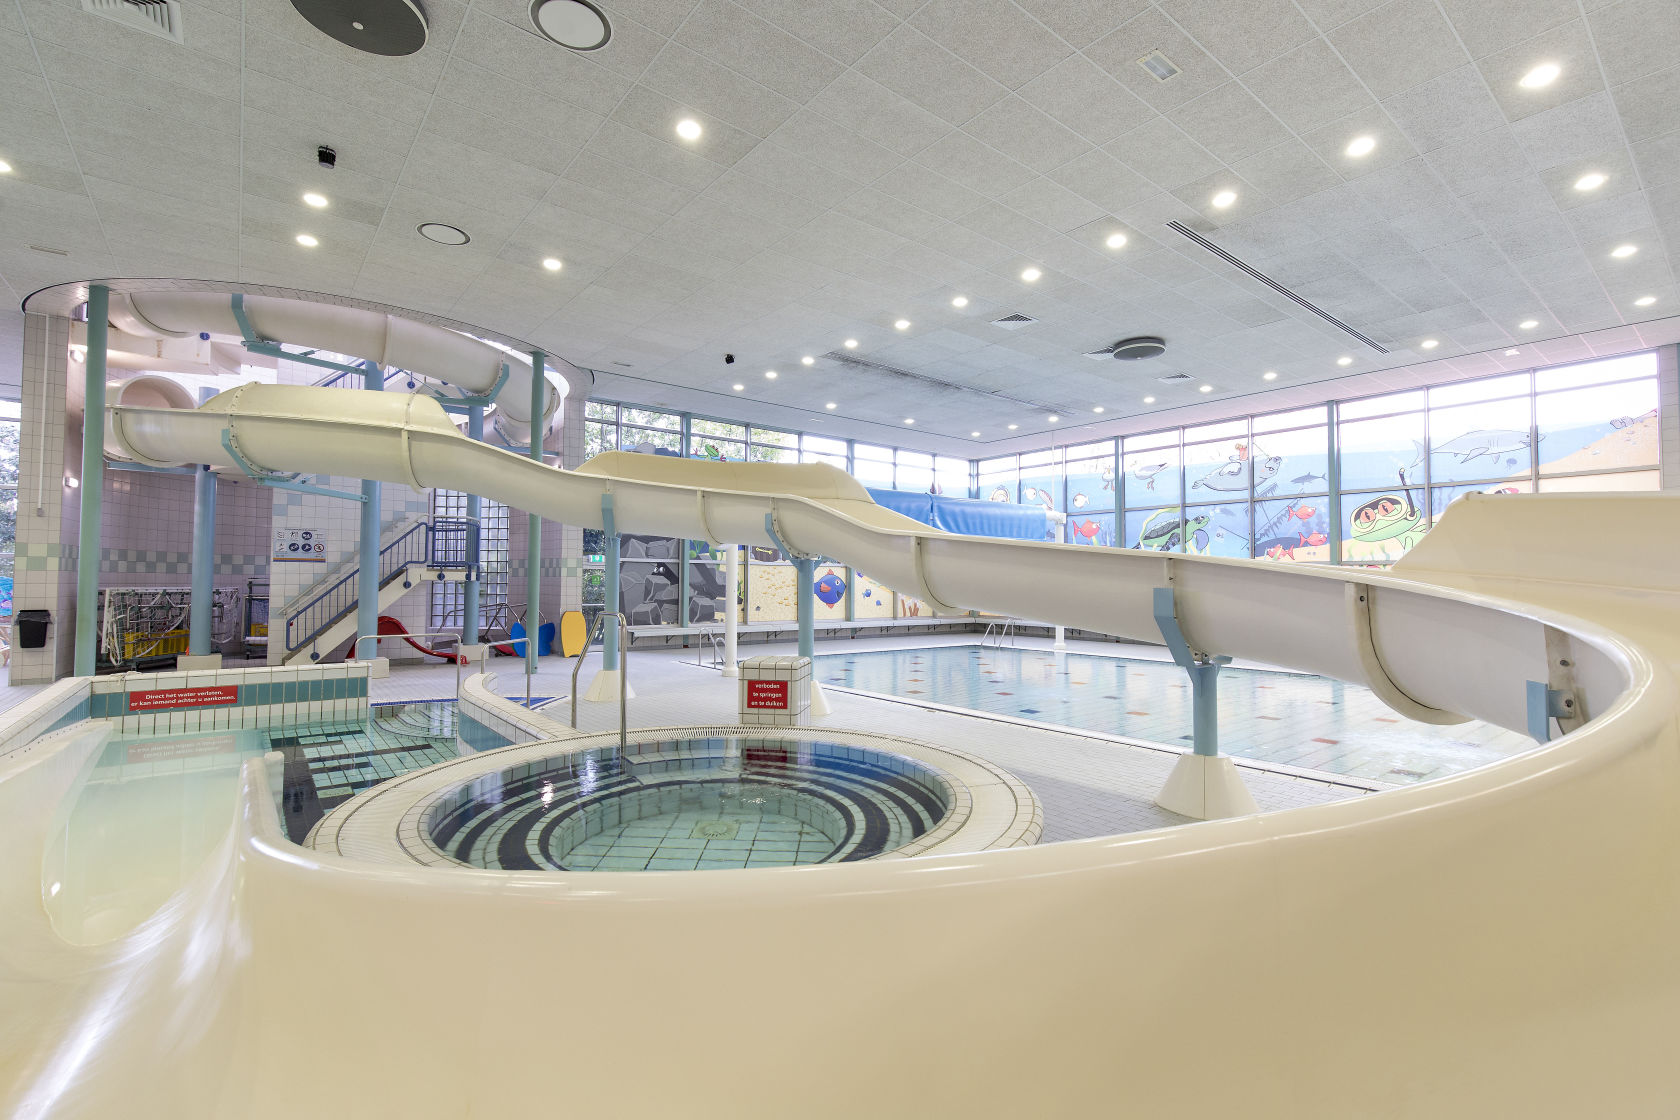 Zwembad Sportcentrum De Wilgenring Work Out At Sportcentrum De Wilgenring And 166 Other Gyms And